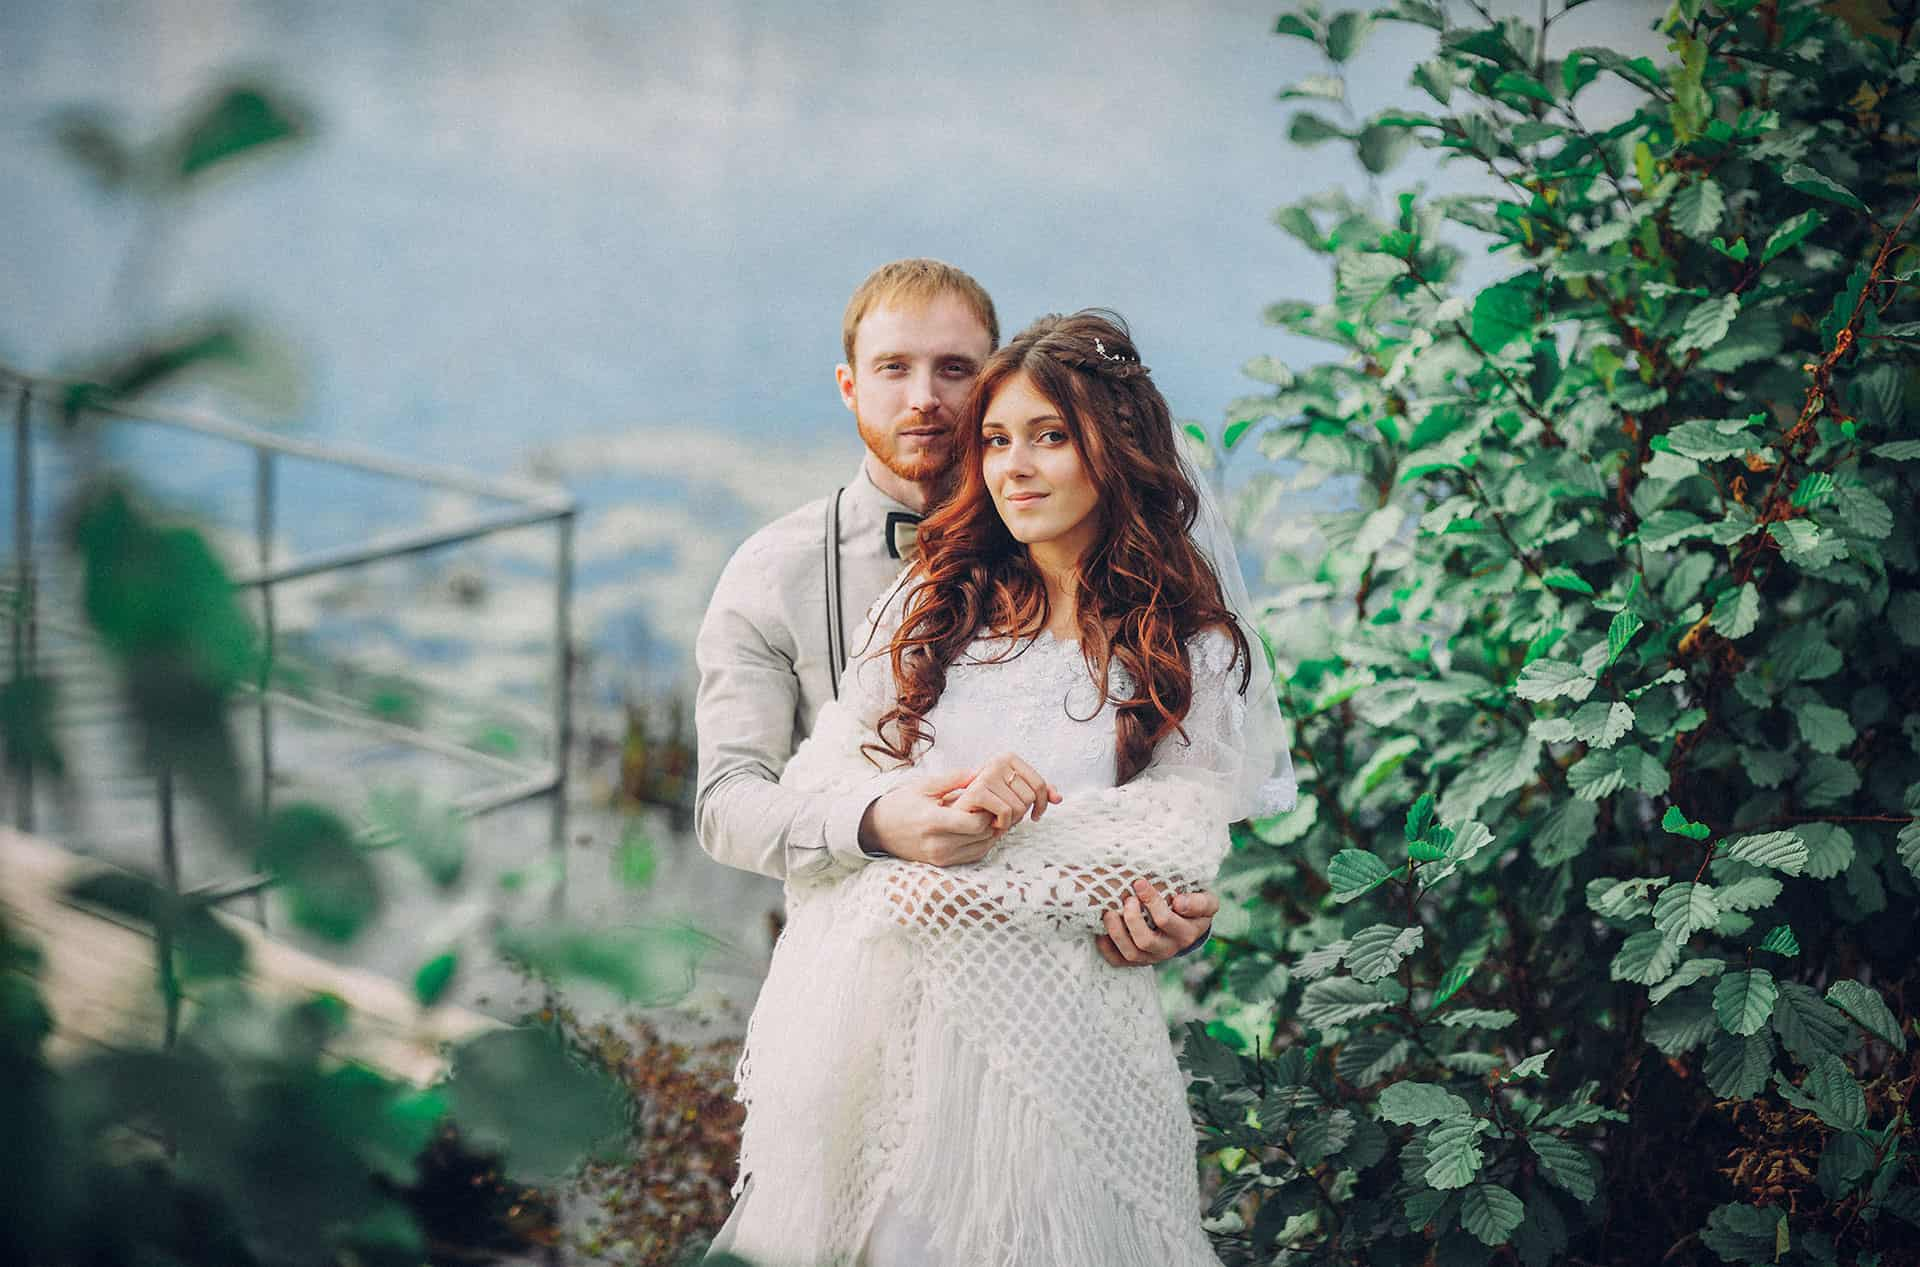 How to Create a Film Look for Weddings in Lightroom